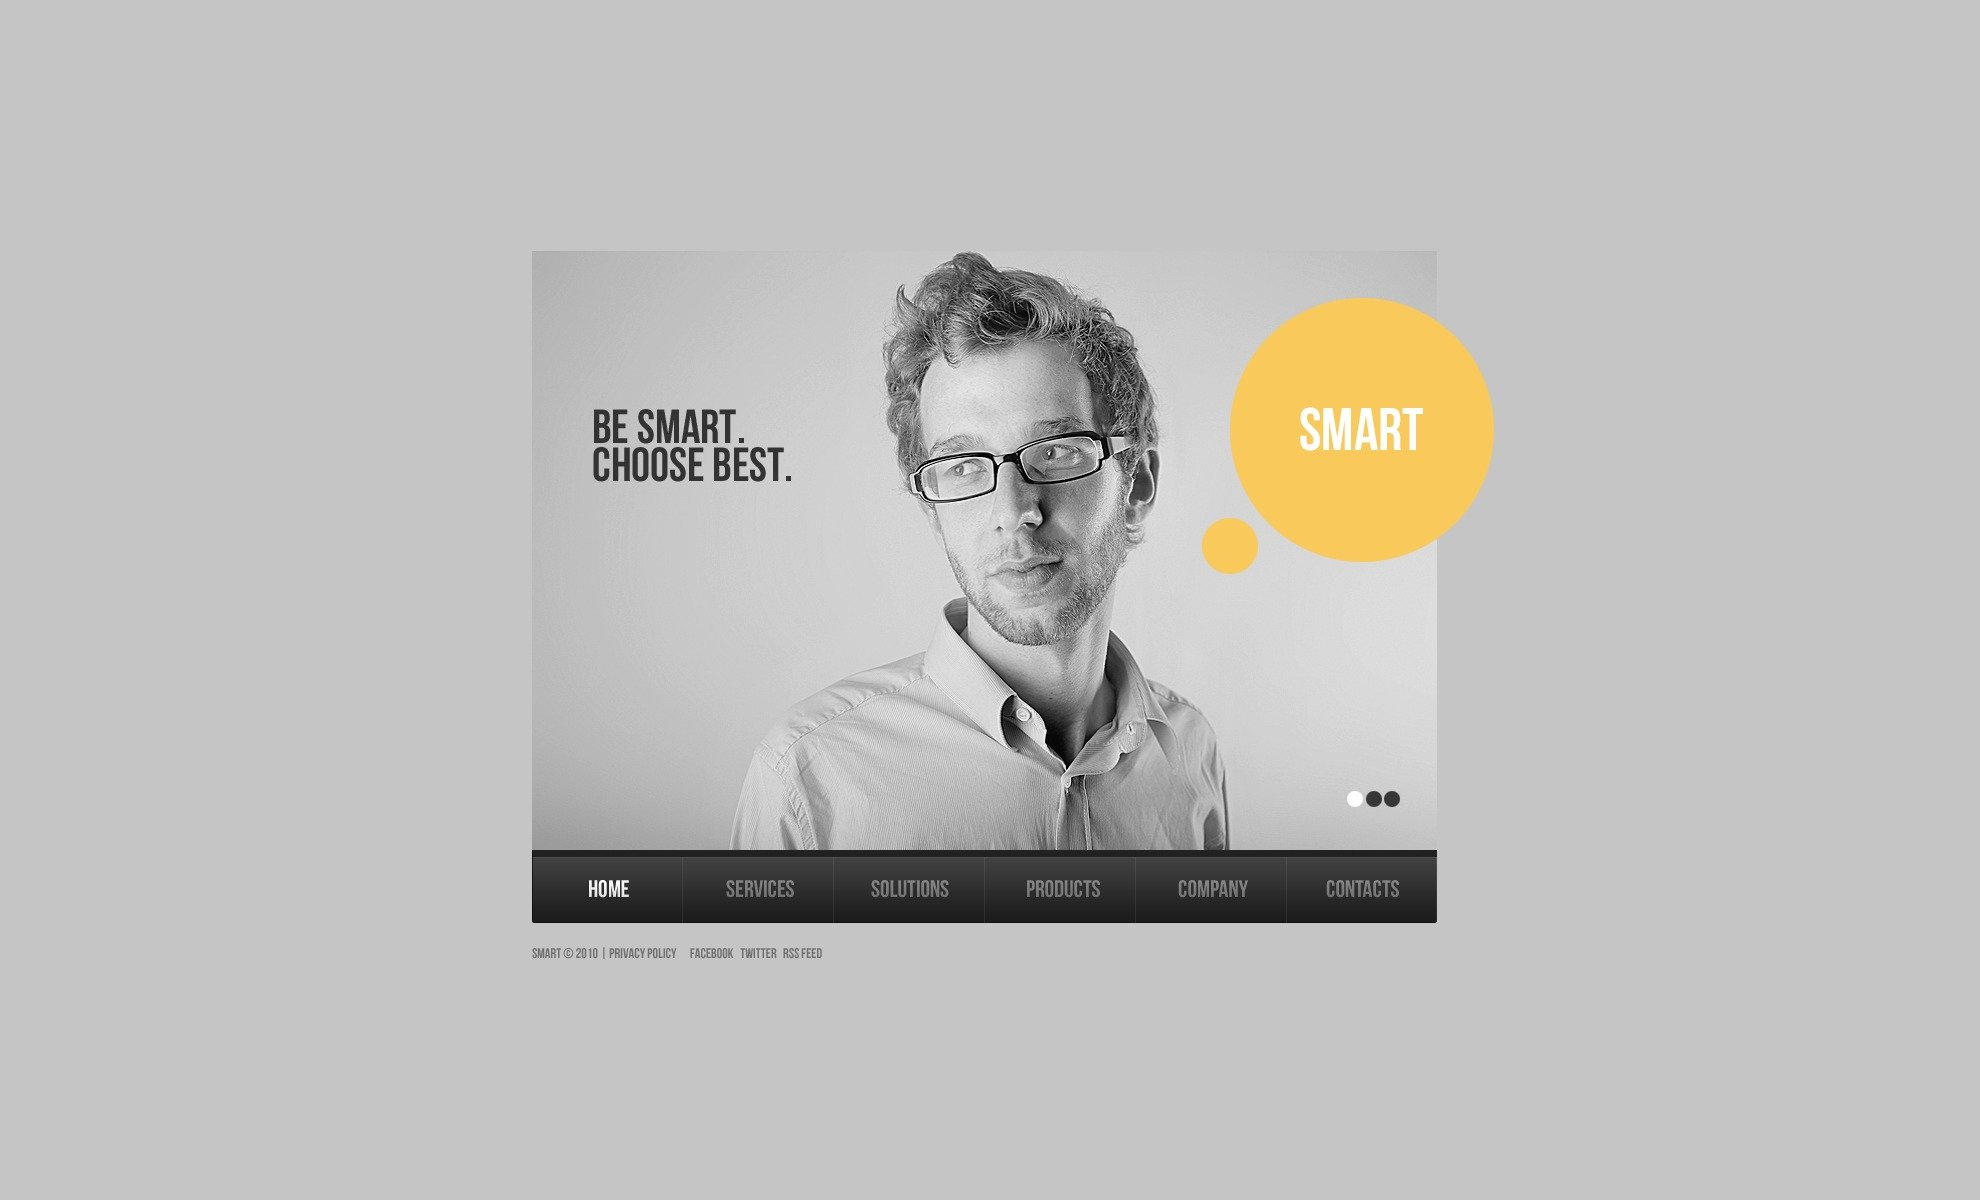 The Smart Business Company PSD Design 54224, one of the best PSD templates of its kind (business, wide, jquery), also known as smart business company PSD template, corporate solutions PSD template, innovations PSD template, contacts PSD template, service PSD template, support PSD template, information dealer PSD template, stocks PSD template, team PSD template, success PSD template, money PSD template, marketing PSD template, director PSD template, manager PSD template, analytics PSD template, planning PSD template, limited PSD template, office PSD template, sales and related with smart business company, corporate solutions, innovations, contacts, service, support, information dealer, stocks, team, success, money, marketing, director, manager, analytics, planning, limited, office, sales, etc.